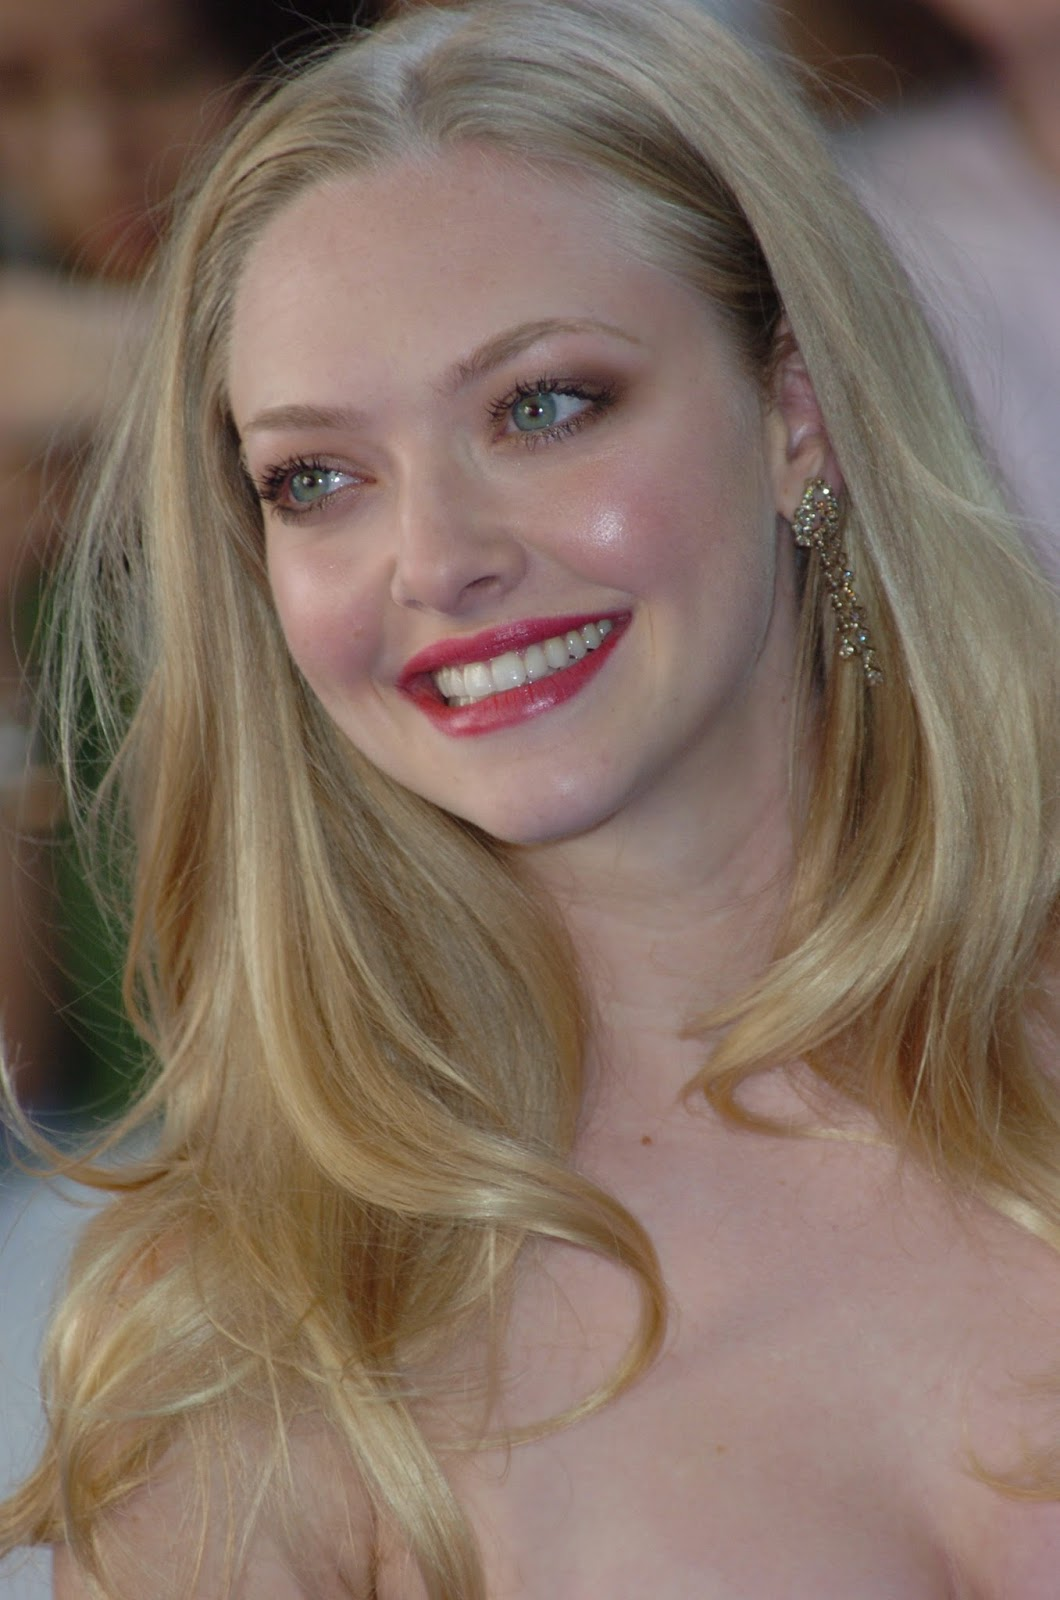 Amanda Seyfried Hot Cleavage Show Off Hq Photos At Mamma -4499